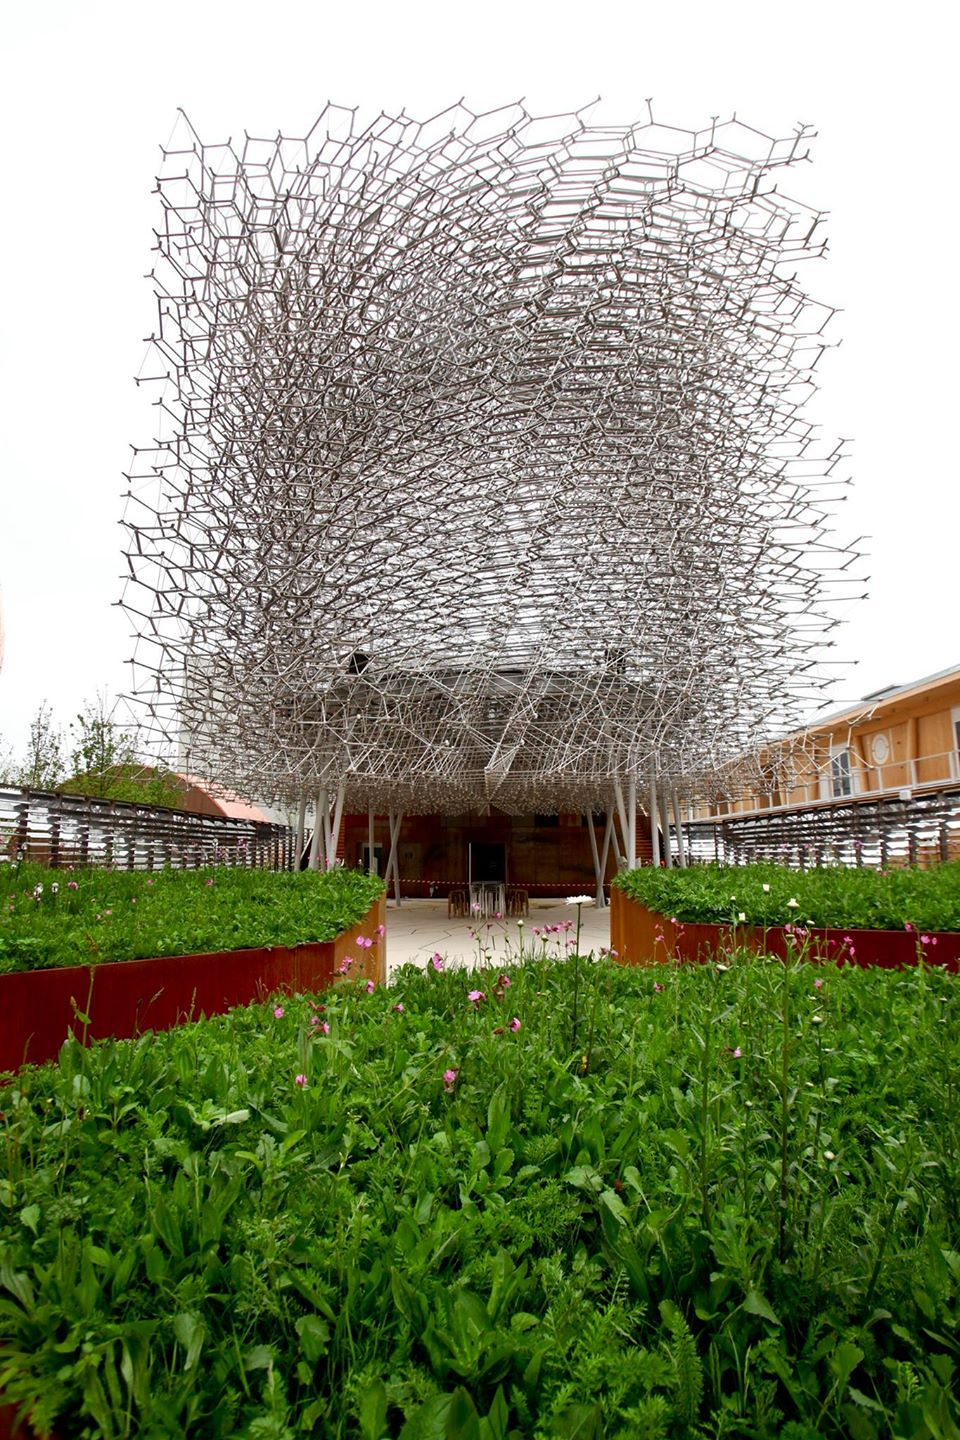 Pavilhão do Reino Unido (Fonte: https://www.facebook.com/Expo2015Milano.it/)